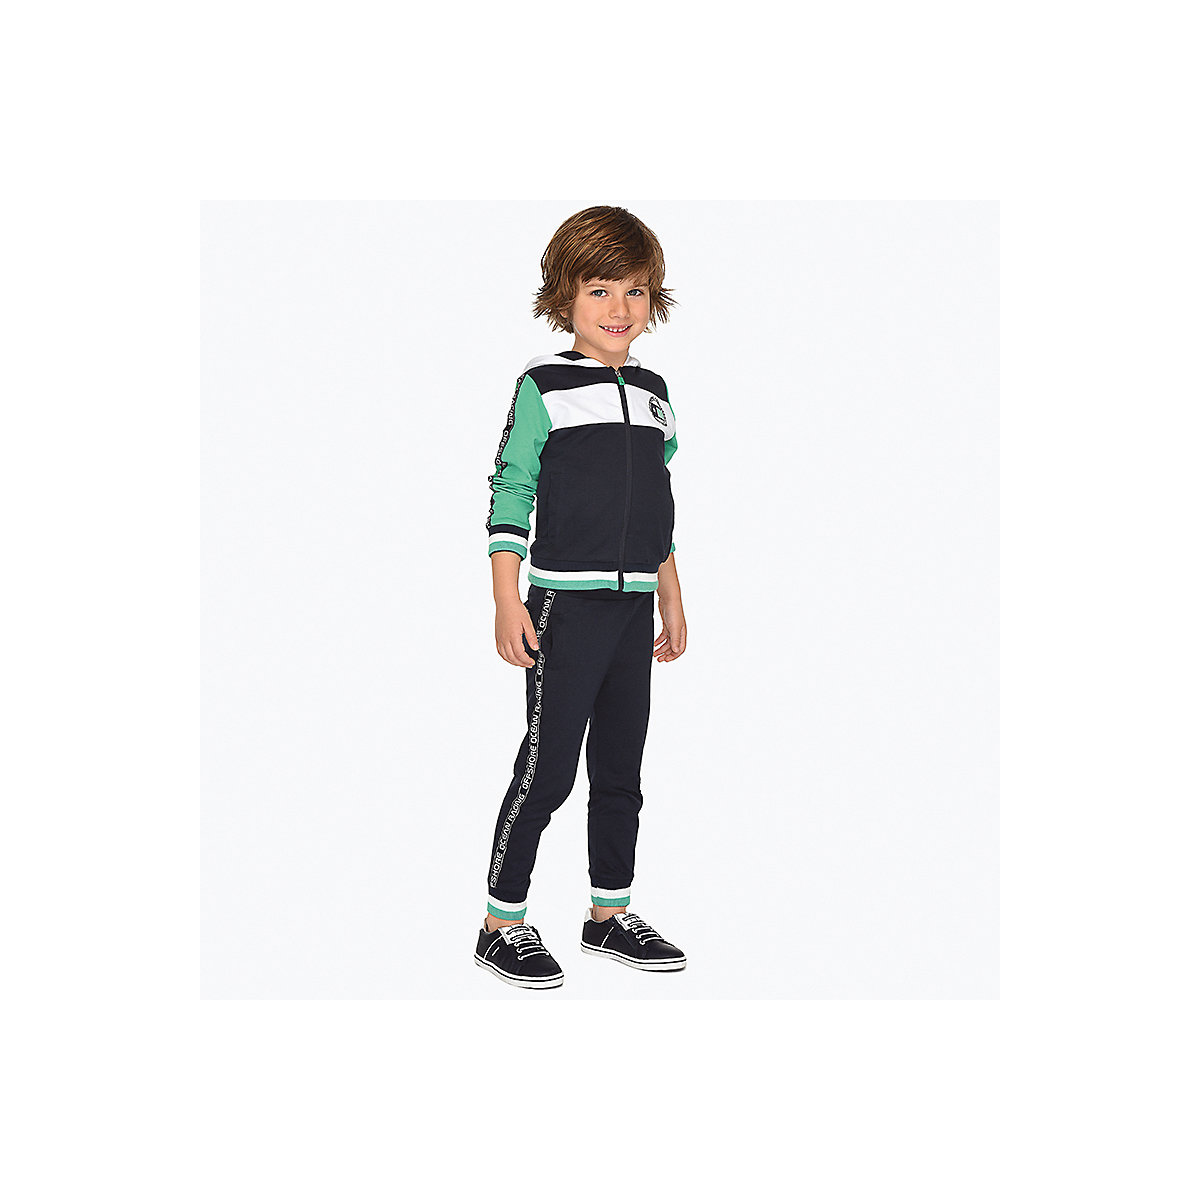 Children Two-Piece Suits Mayoral 10685147 Children Sportswear Accessories Costumes For The Child